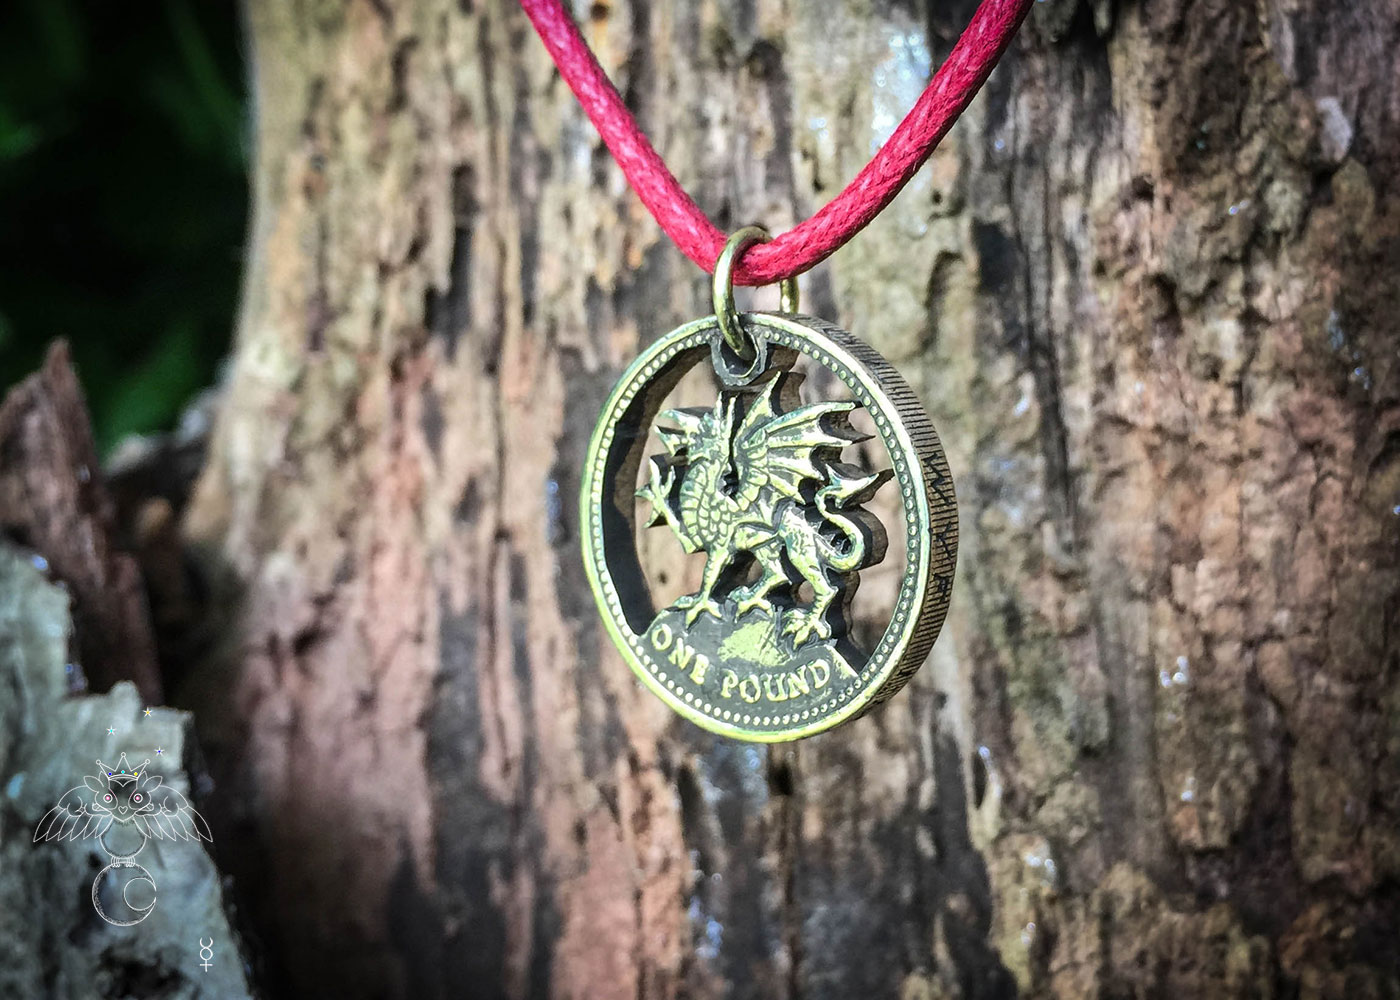 Welsh Dragon coin jewellery - hand cut recycled out of circulation old £1 coin